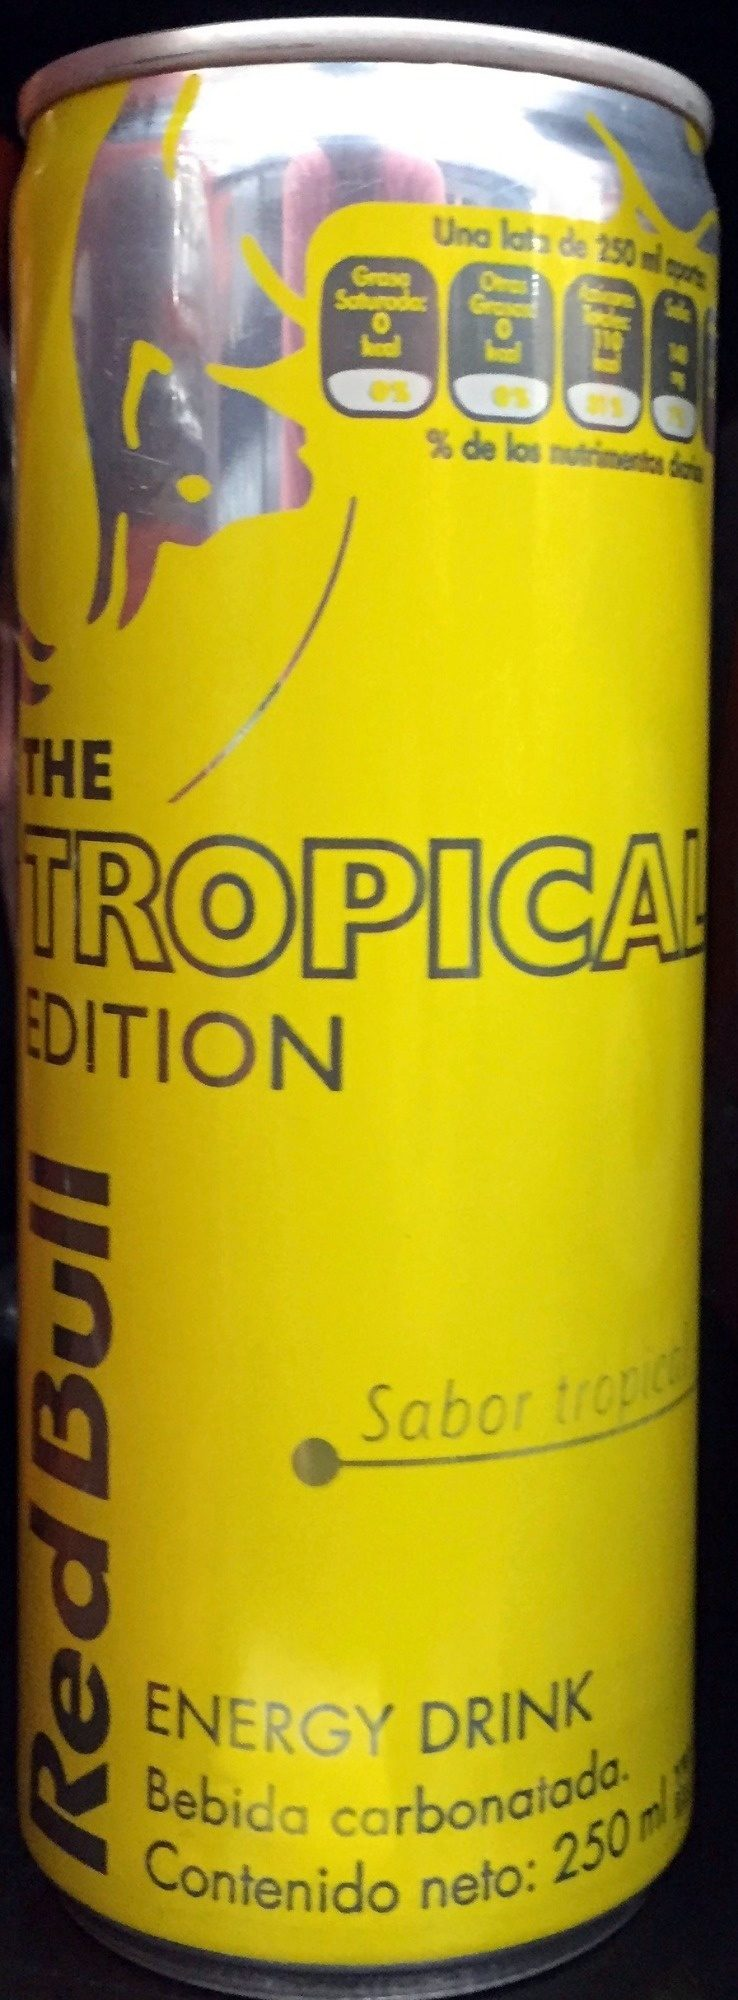 RedBull The Tropical Edition - Product